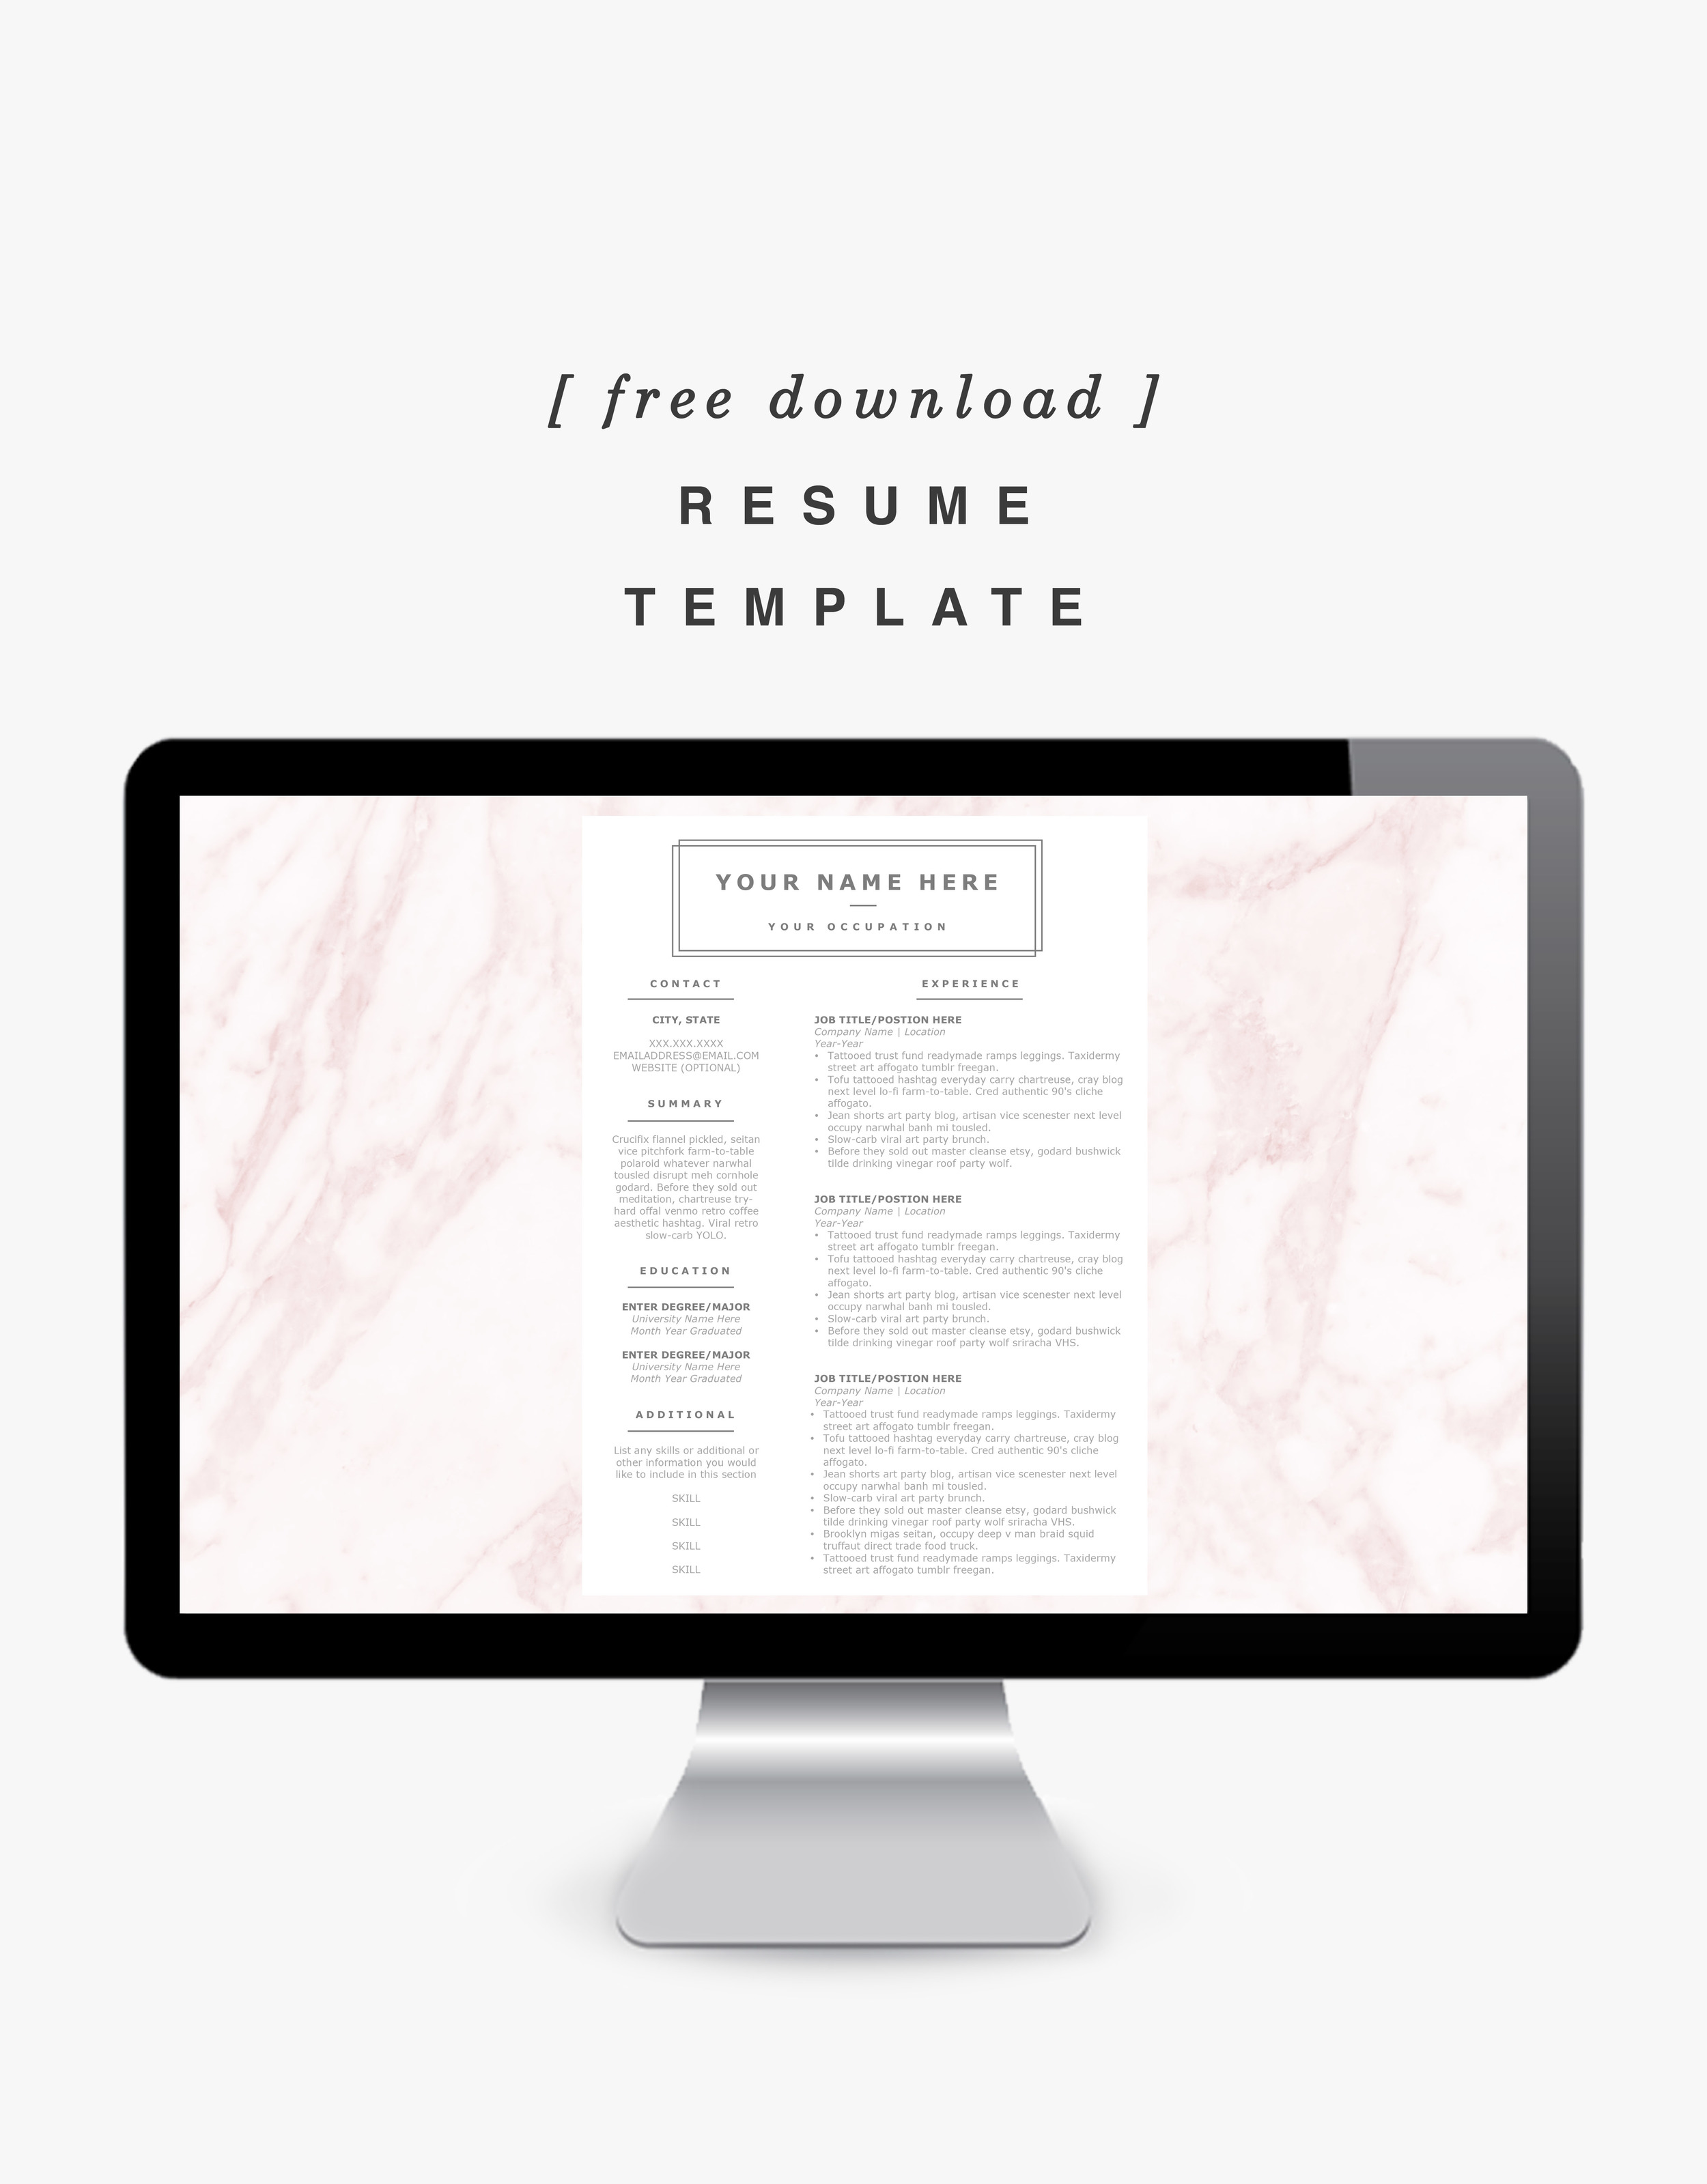 Resume Template - Free Download on Shannon Did What?